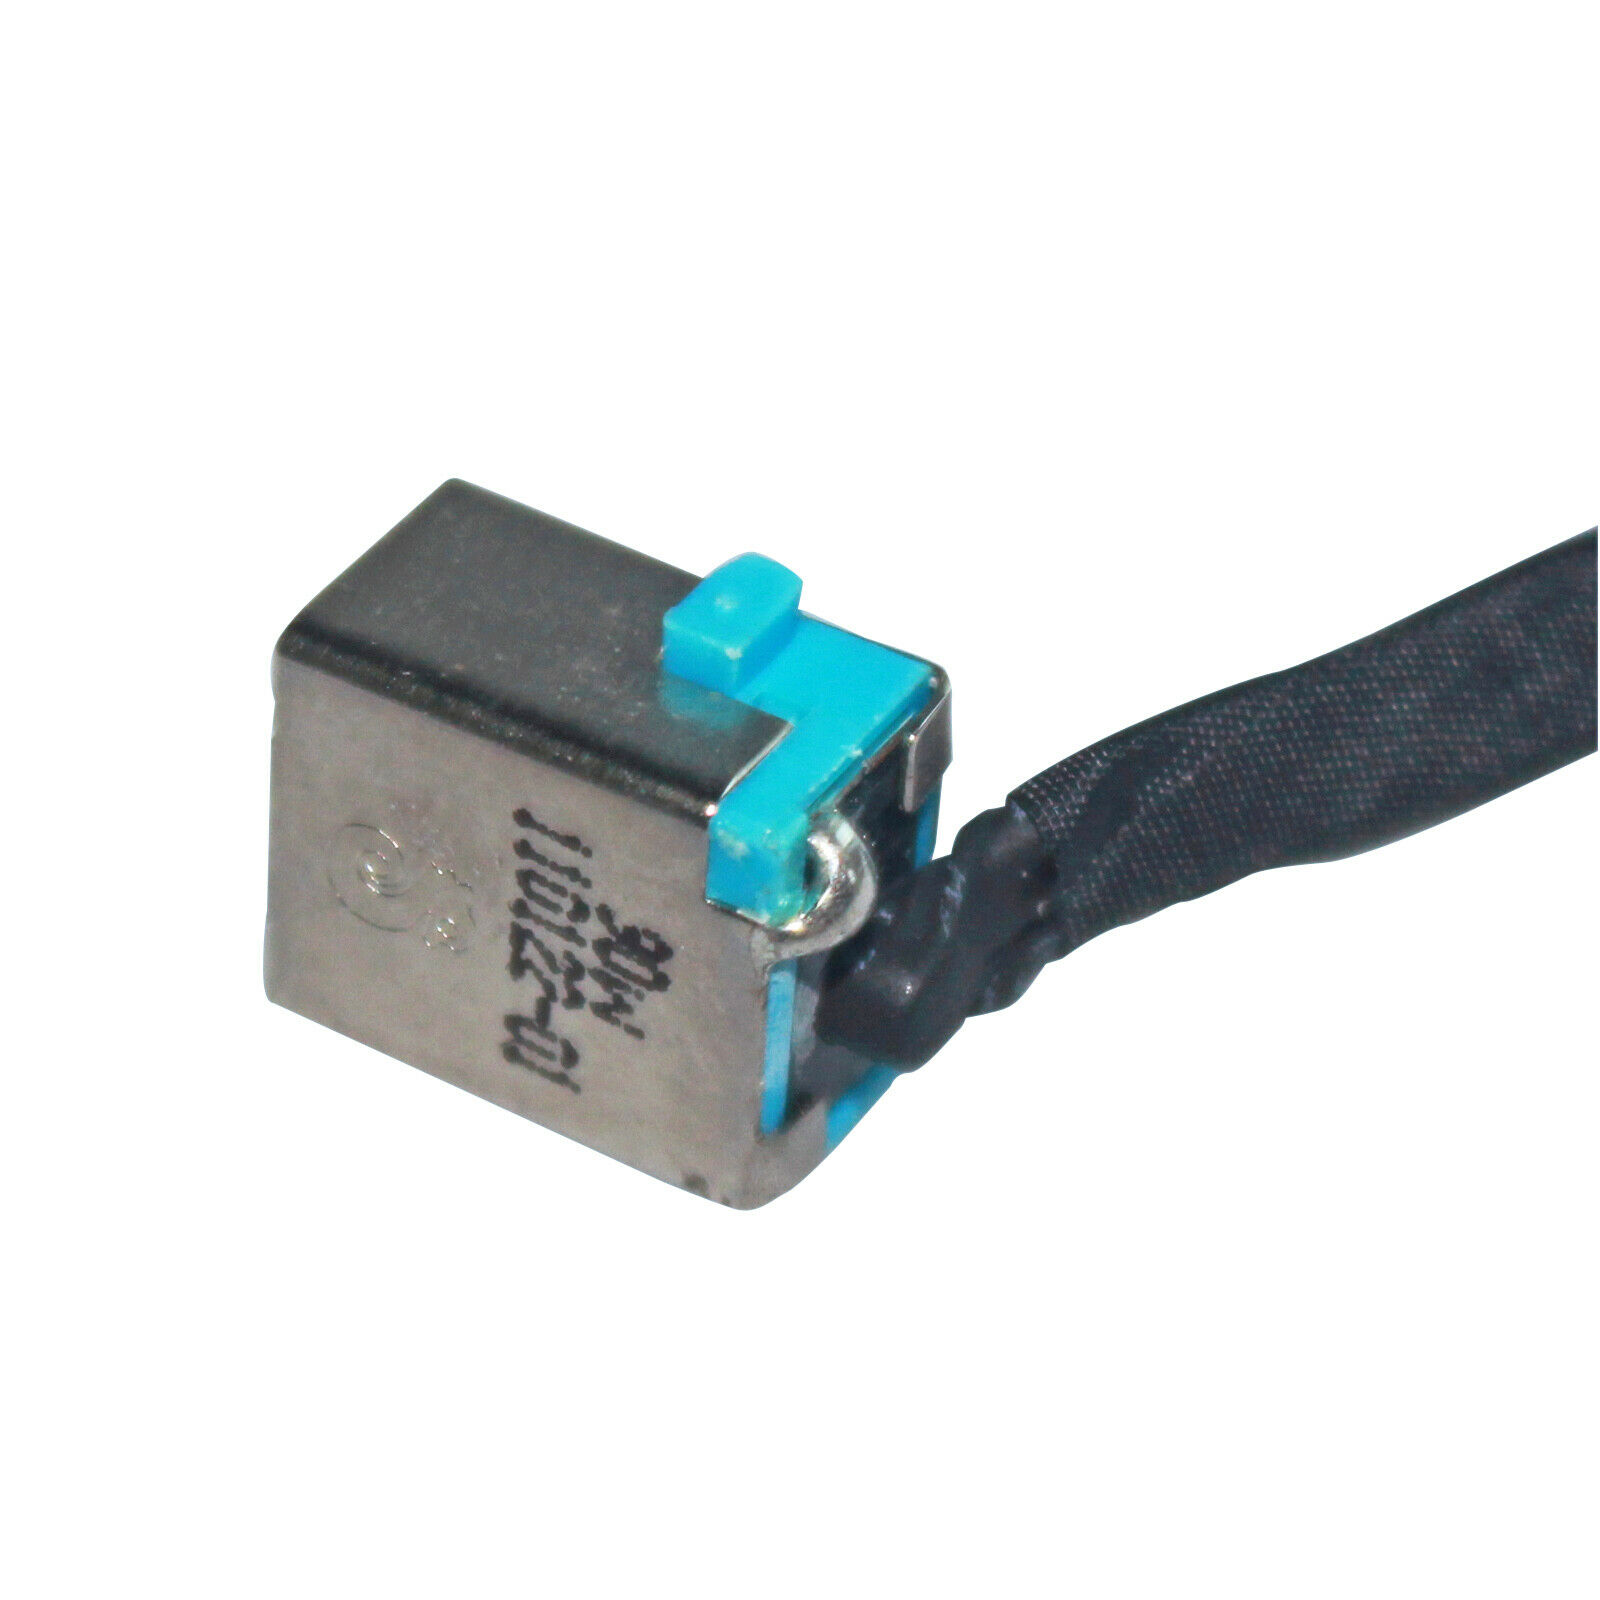 Original DC power jack with cable for ACER ASPIRE 5733-4851 5733Z-4516 5741-3541